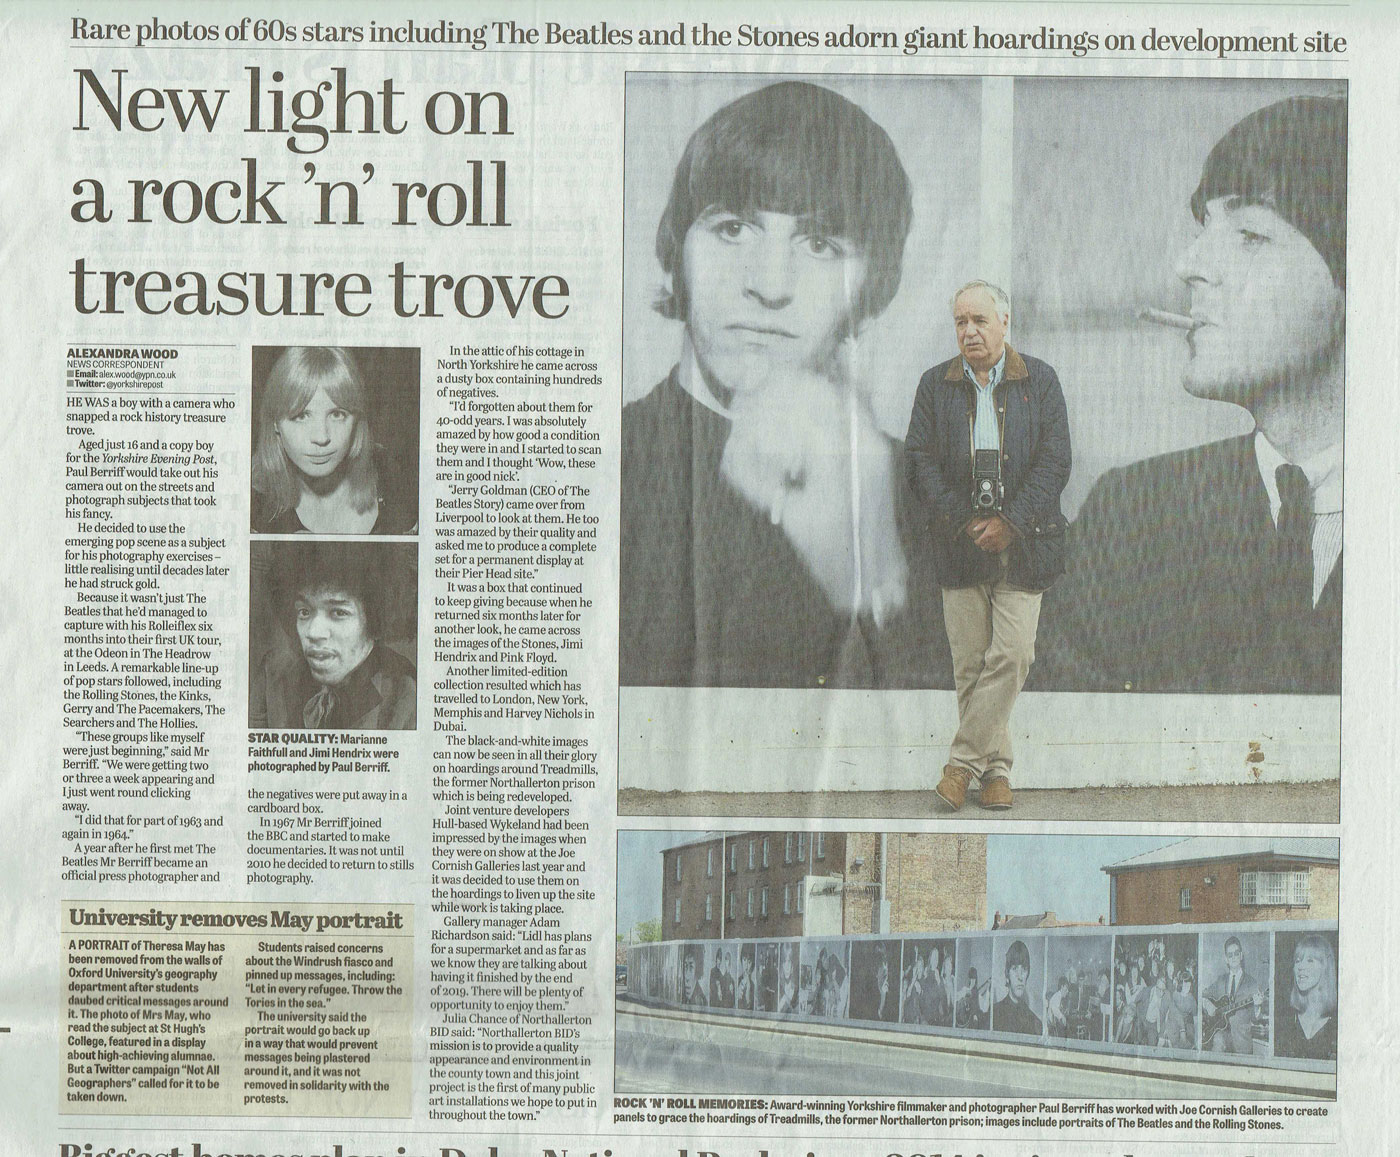 Prison hoardings to feature 60s pop icons in new exhibition